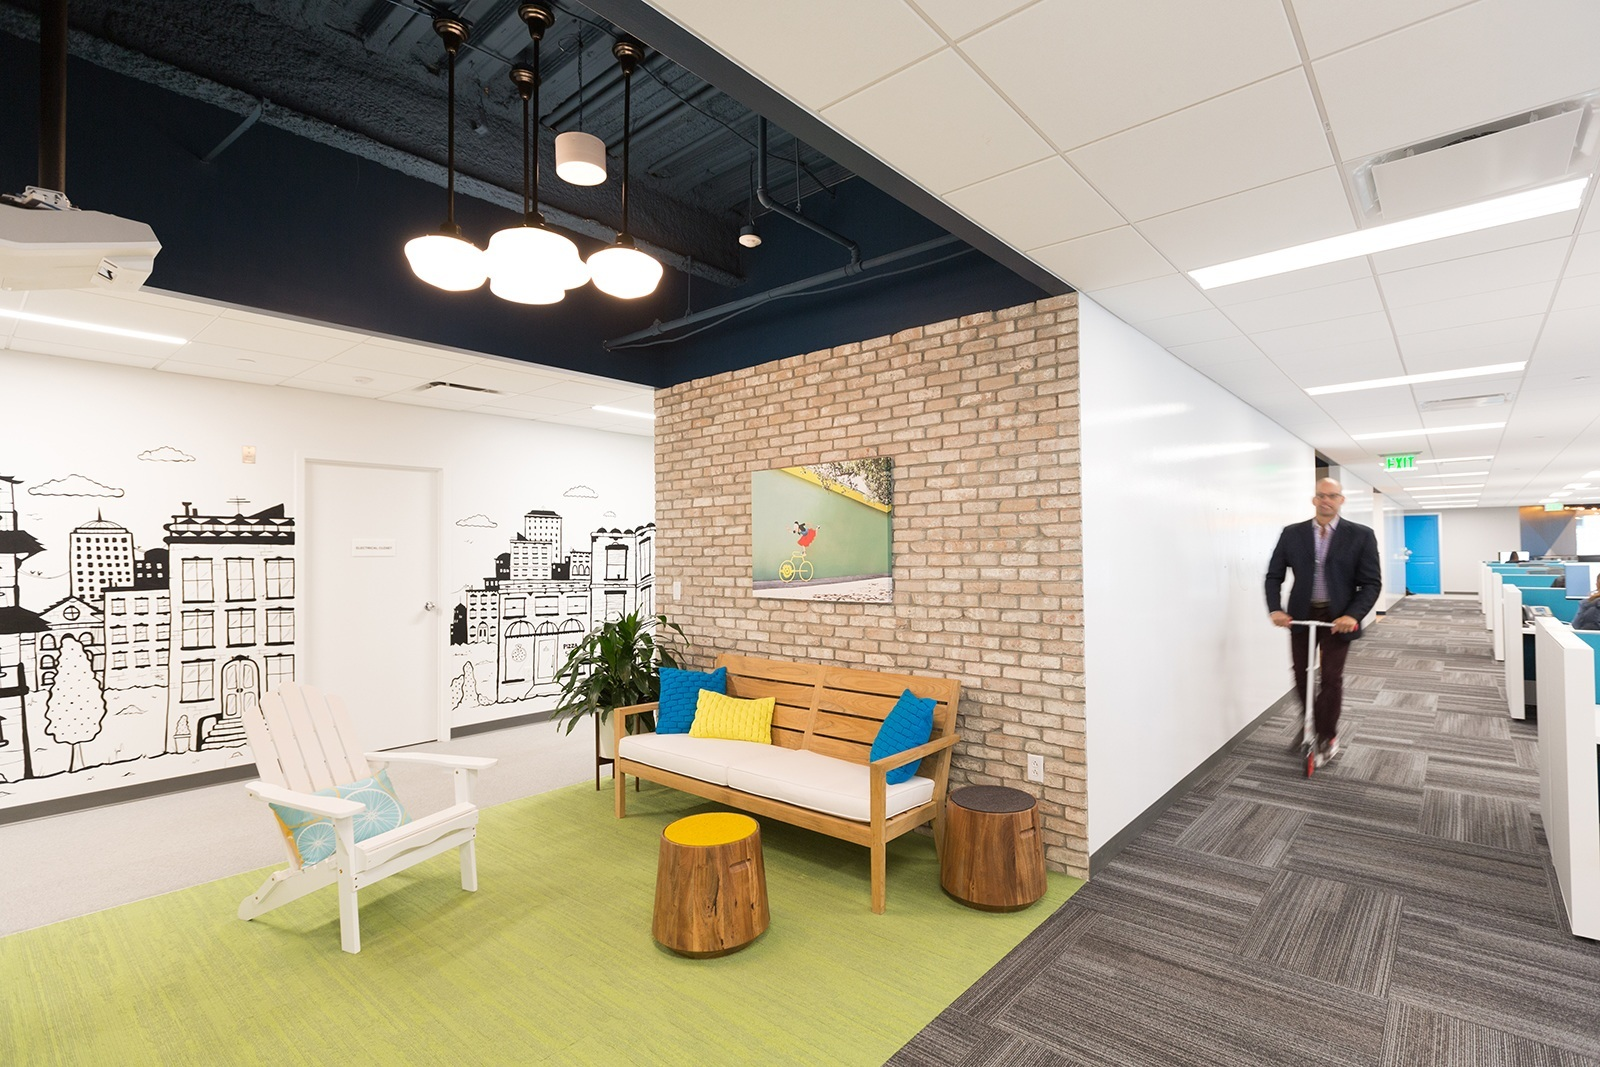 A Look Inside Placester's New Boston Office